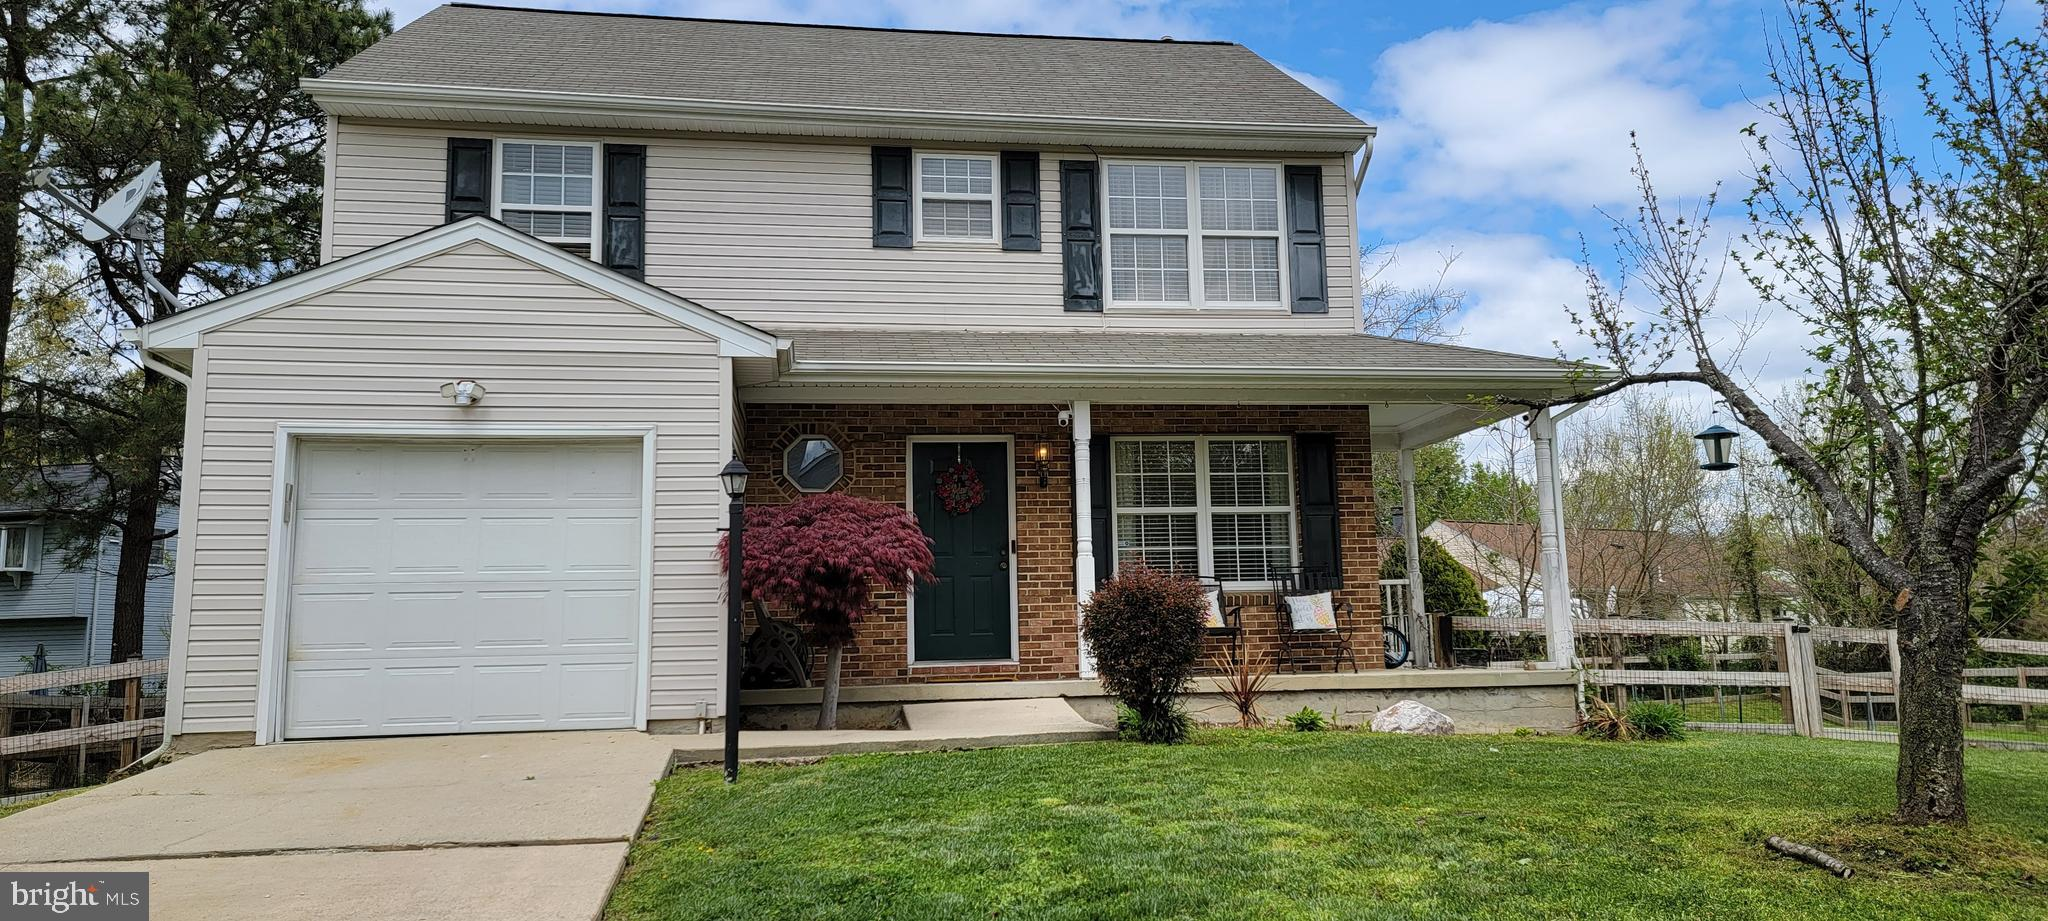 A Freshly painted, wonderfully updated home perfect for you. With plenty of space in this 3 level ho